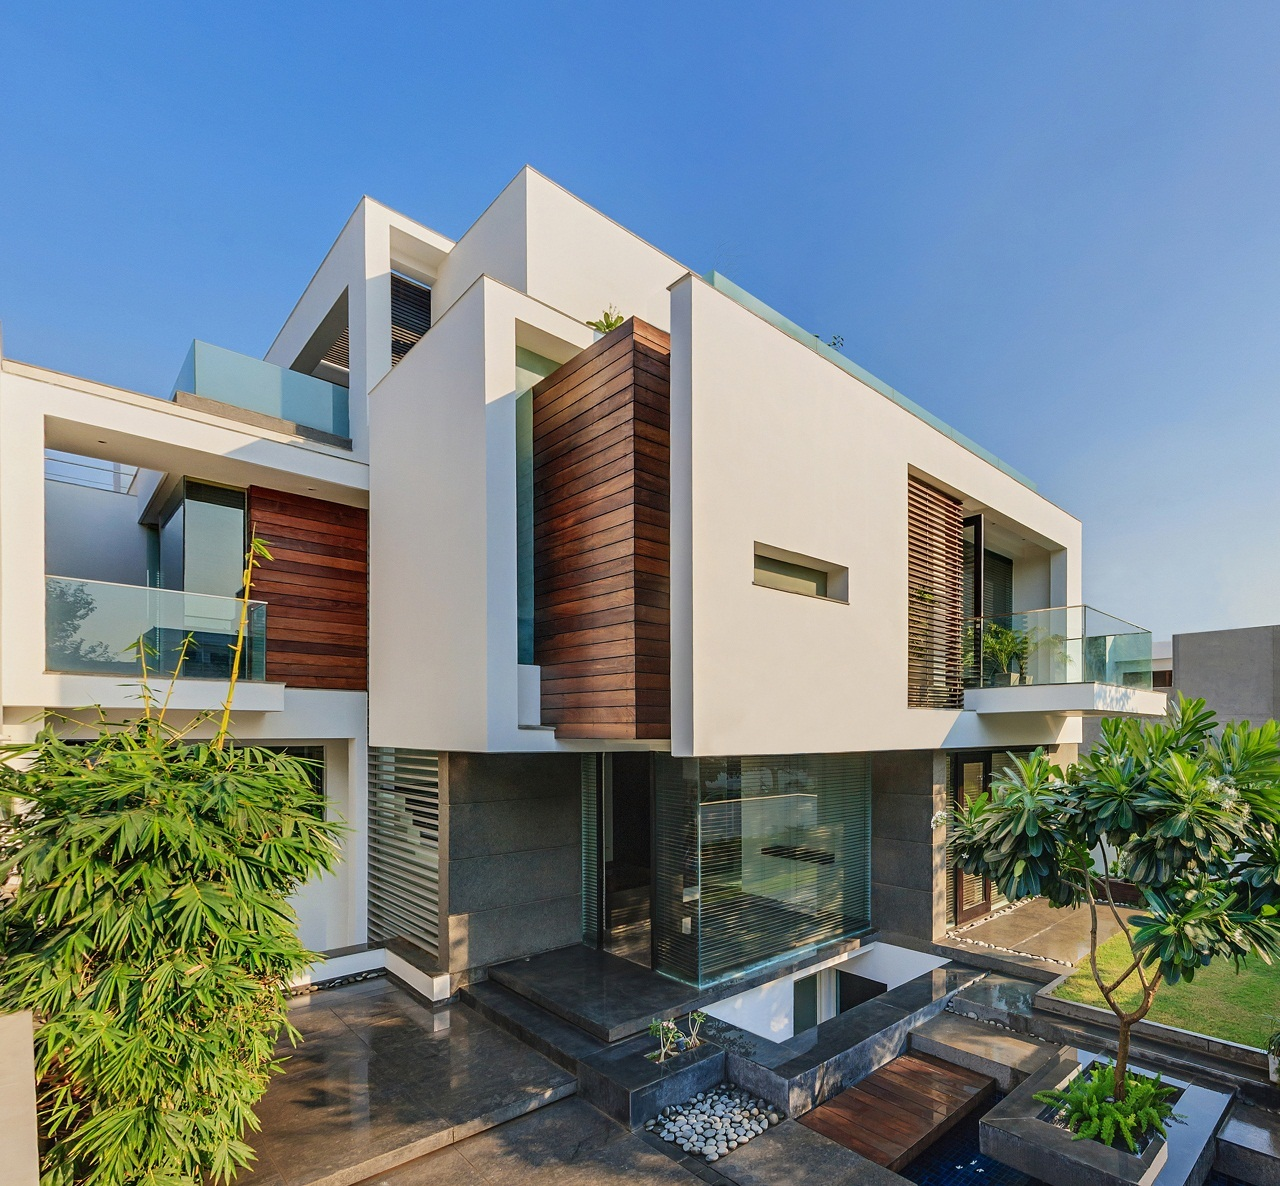 Modern Indian Architecture Google Search: World Of Architecture: Asian Dream Home With Perfect